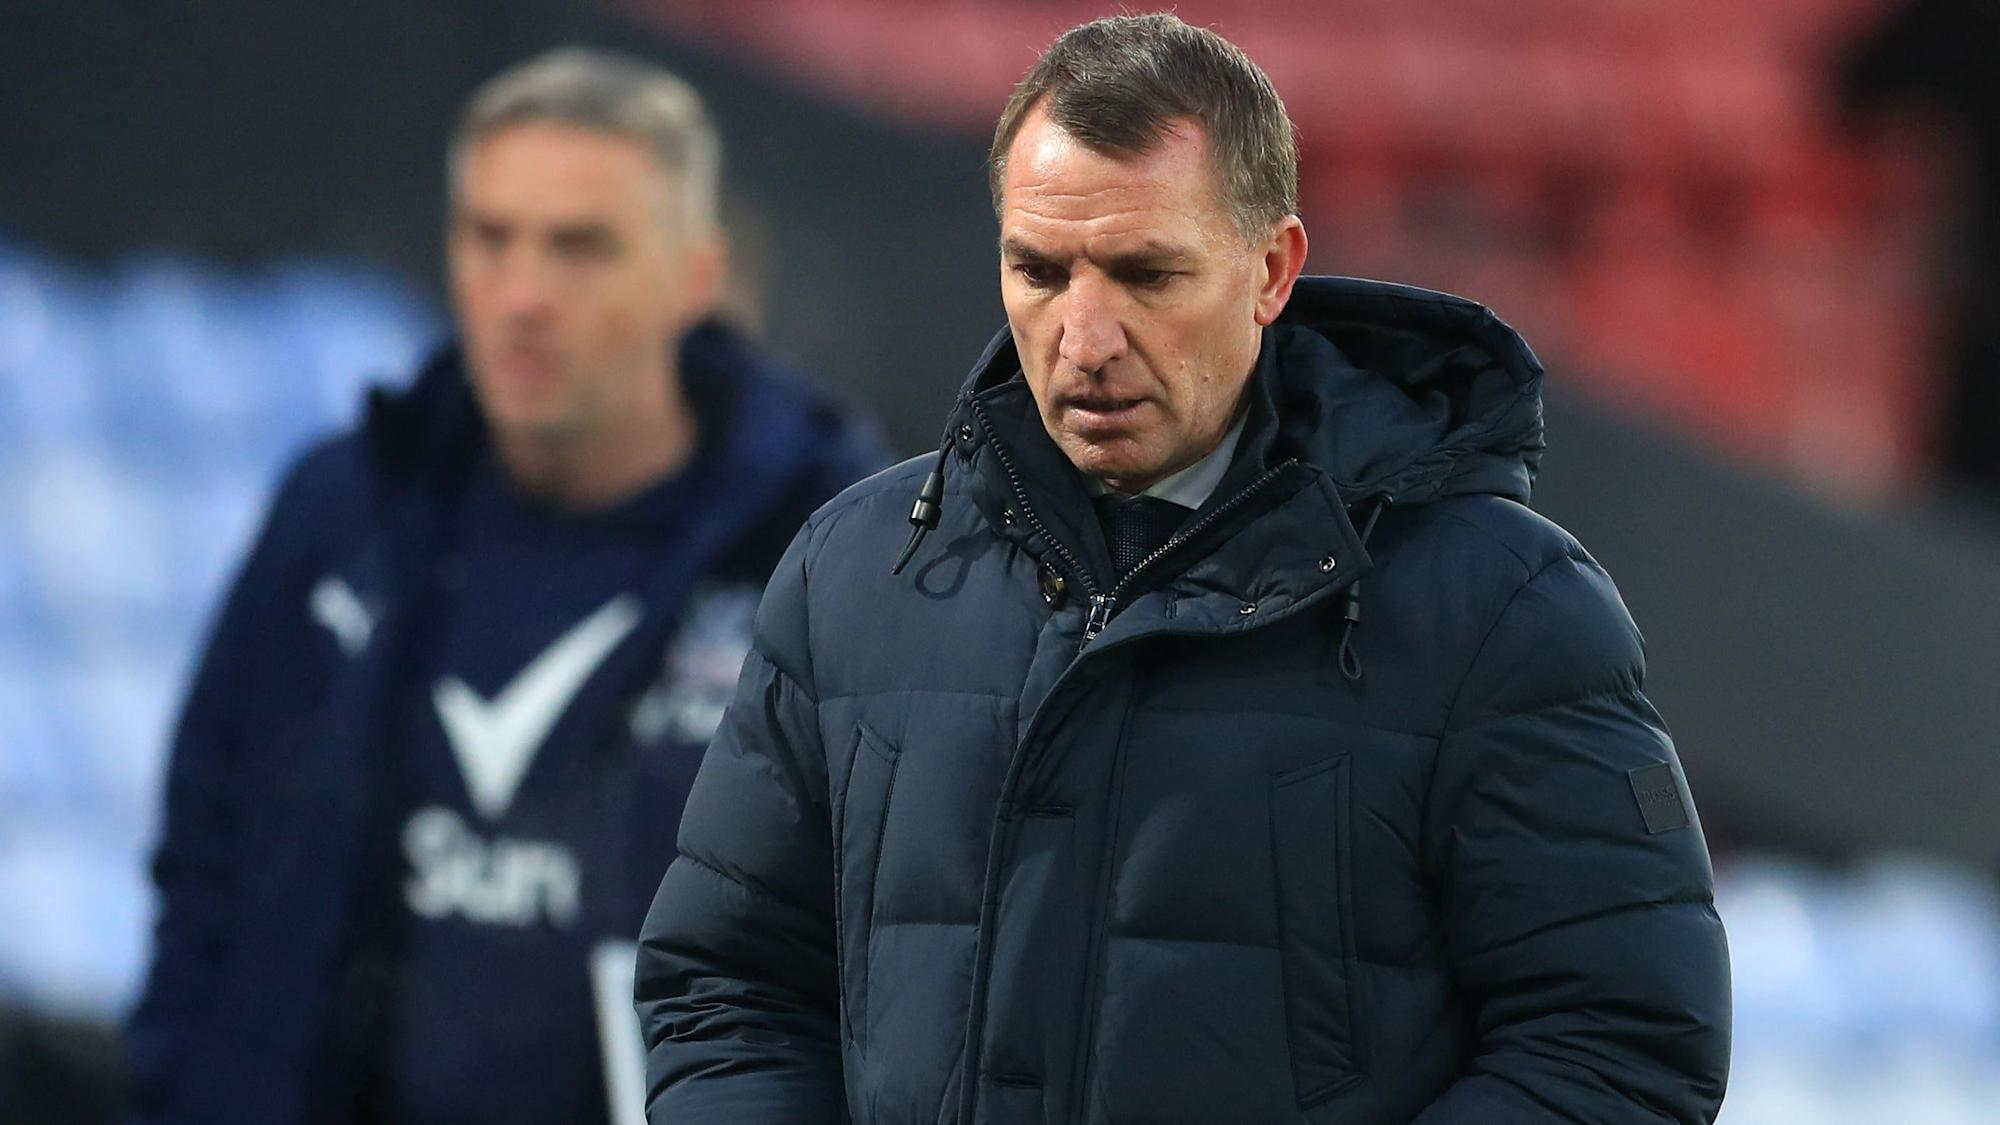 Brendan Rodgers calls for better Leicester performance in Everton rematch